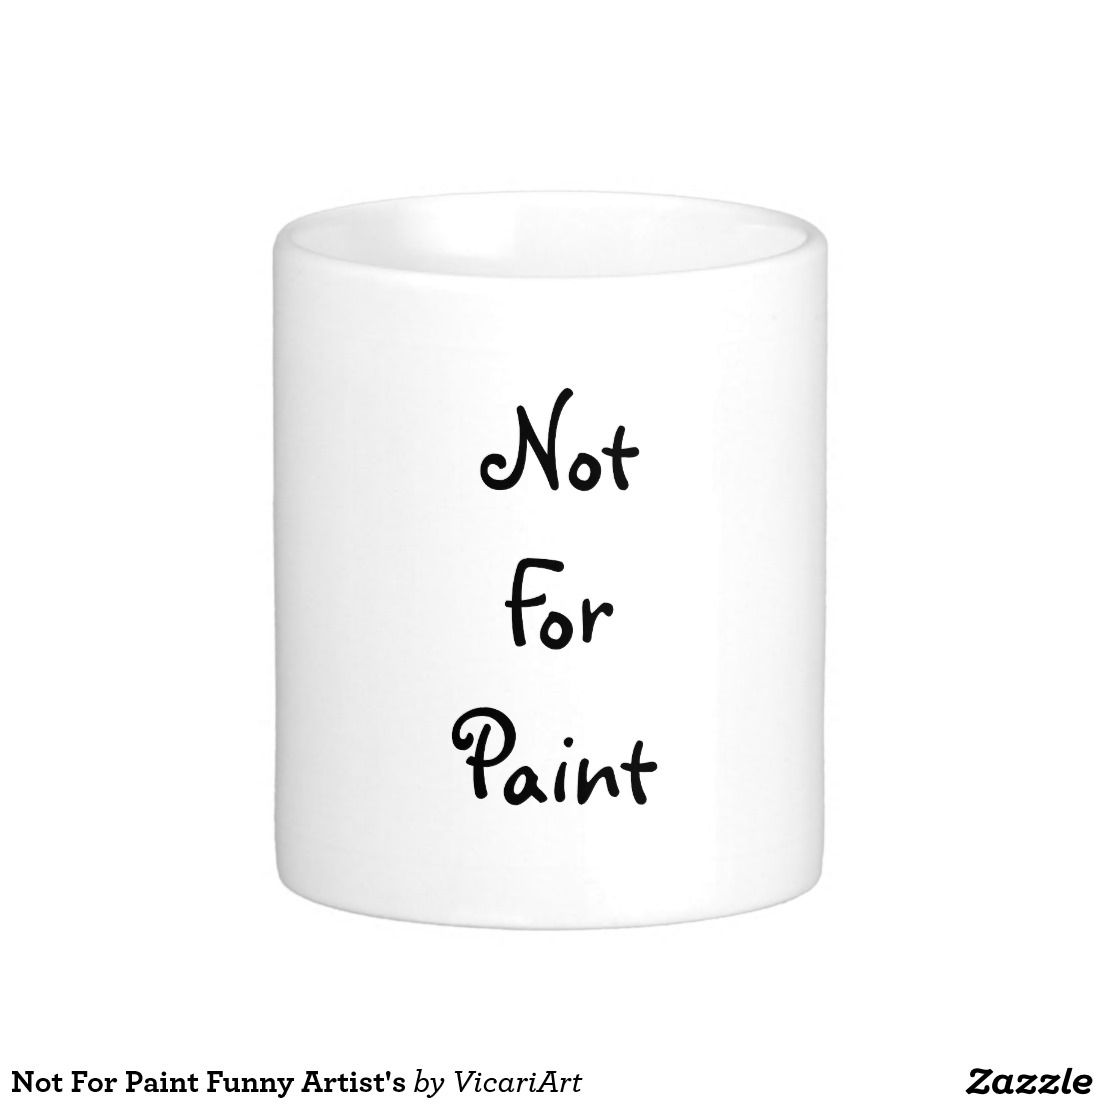 Not For Paint Funny Artist's Coffee Mug. The perfect mug for the coffee-drinking artist!